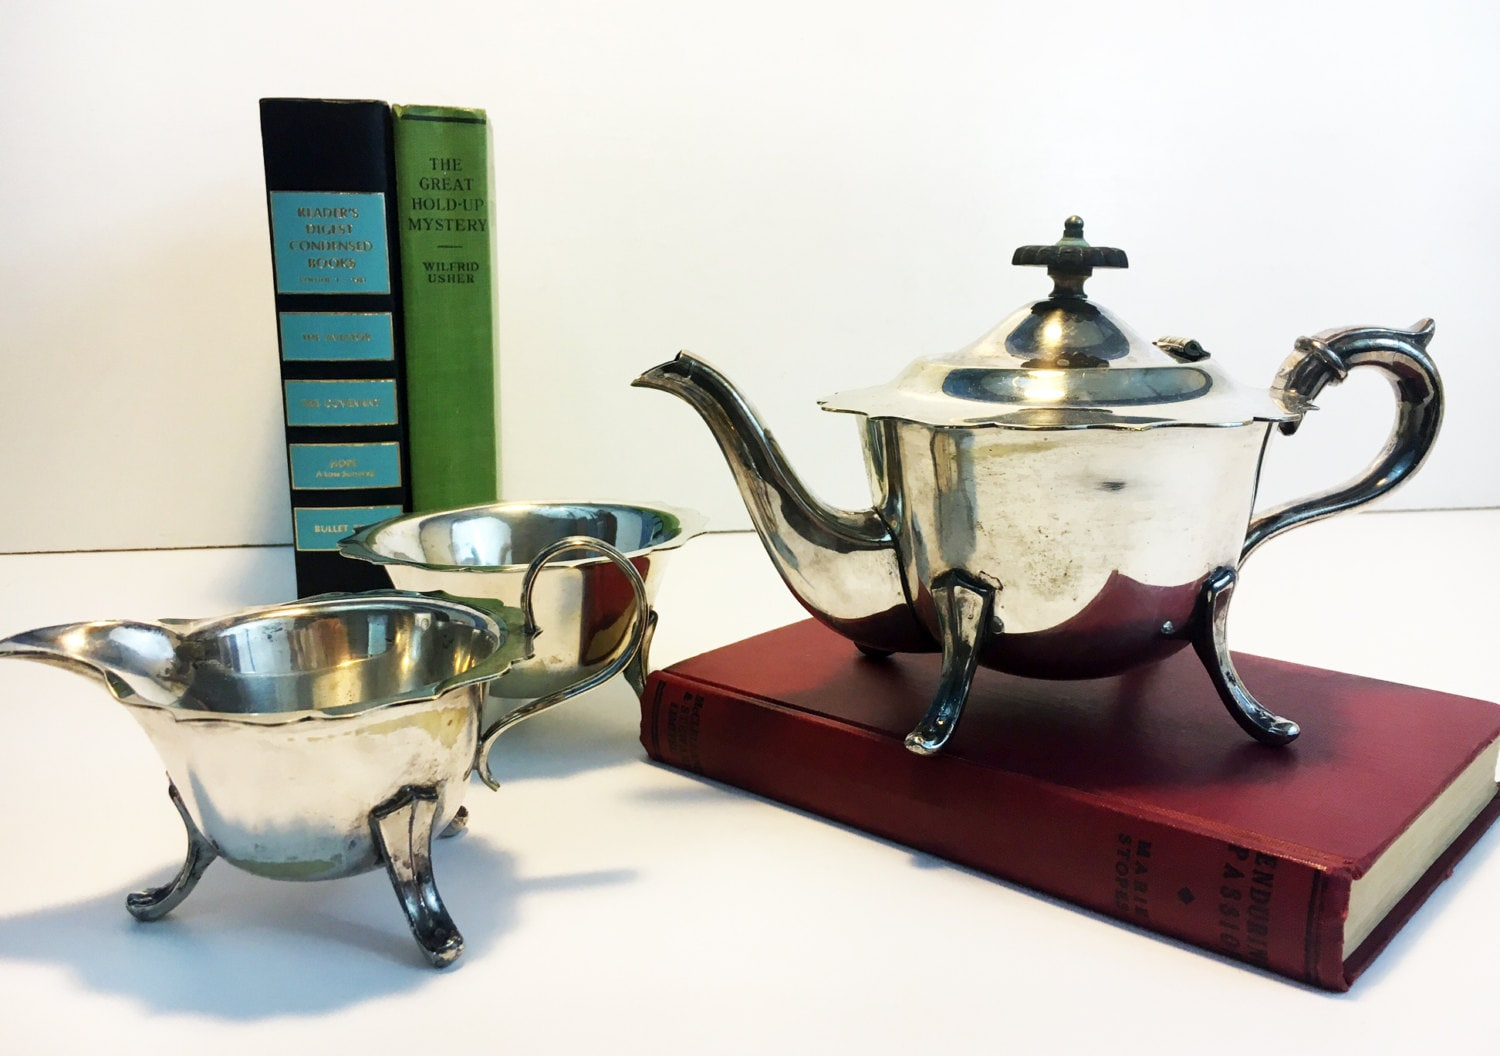 1d14aaea8b1c2 Sheffield Silver Plate English Tea Set - Tea pot Creamer Sugar Bowl  Scalloped Edges - Vintage 3 Piece TEA SERVICE Teapot or Coffeepot EPNS.  gallery photo ...